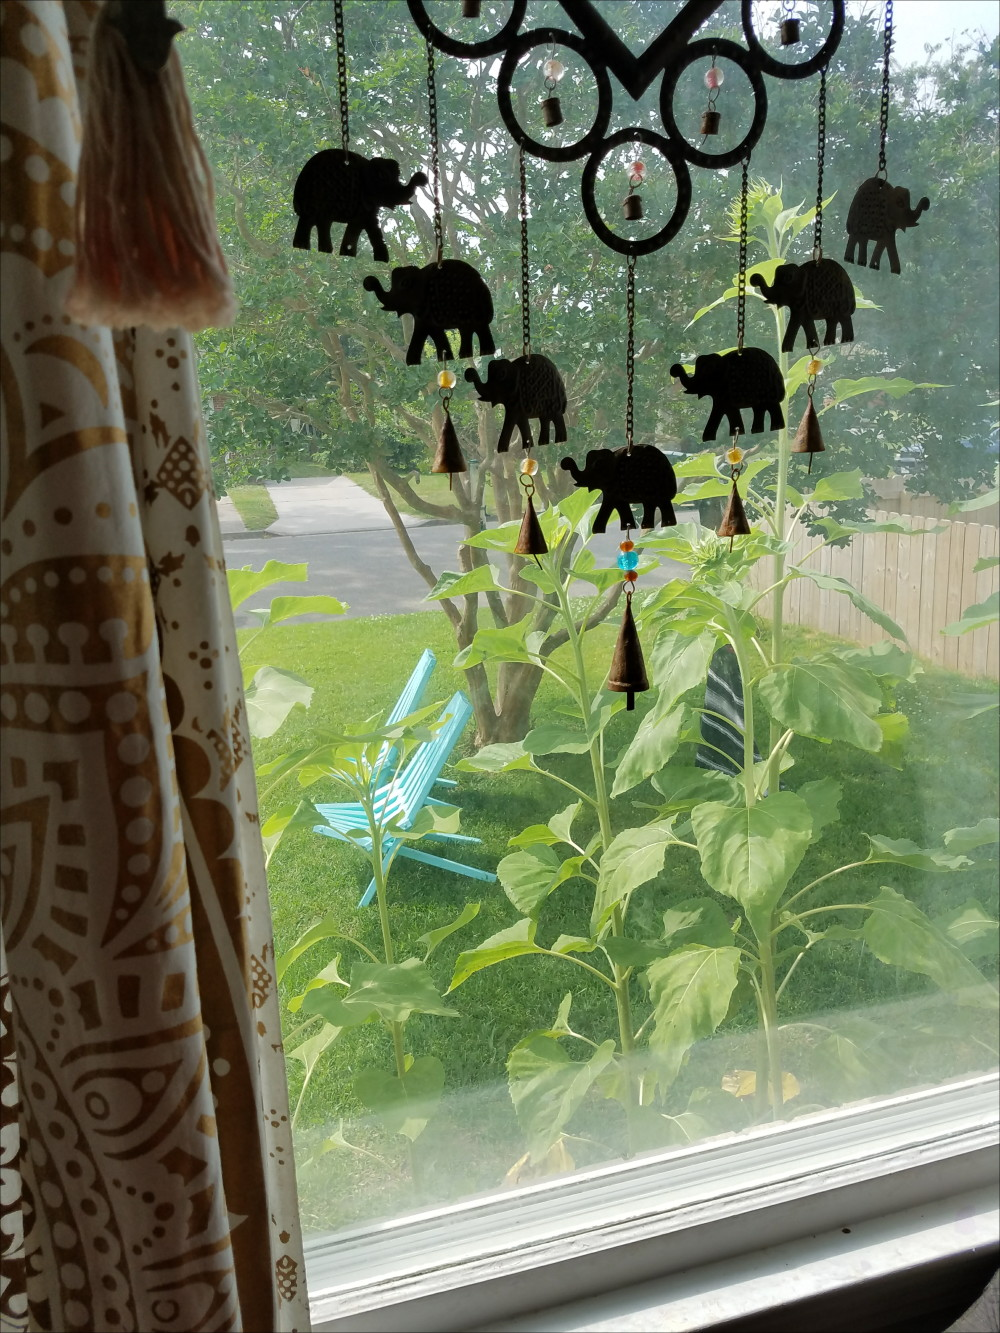 Looking put the window. Giant sunflowers, aqua yard chairs, elephant sunshine. - @adesignerathome